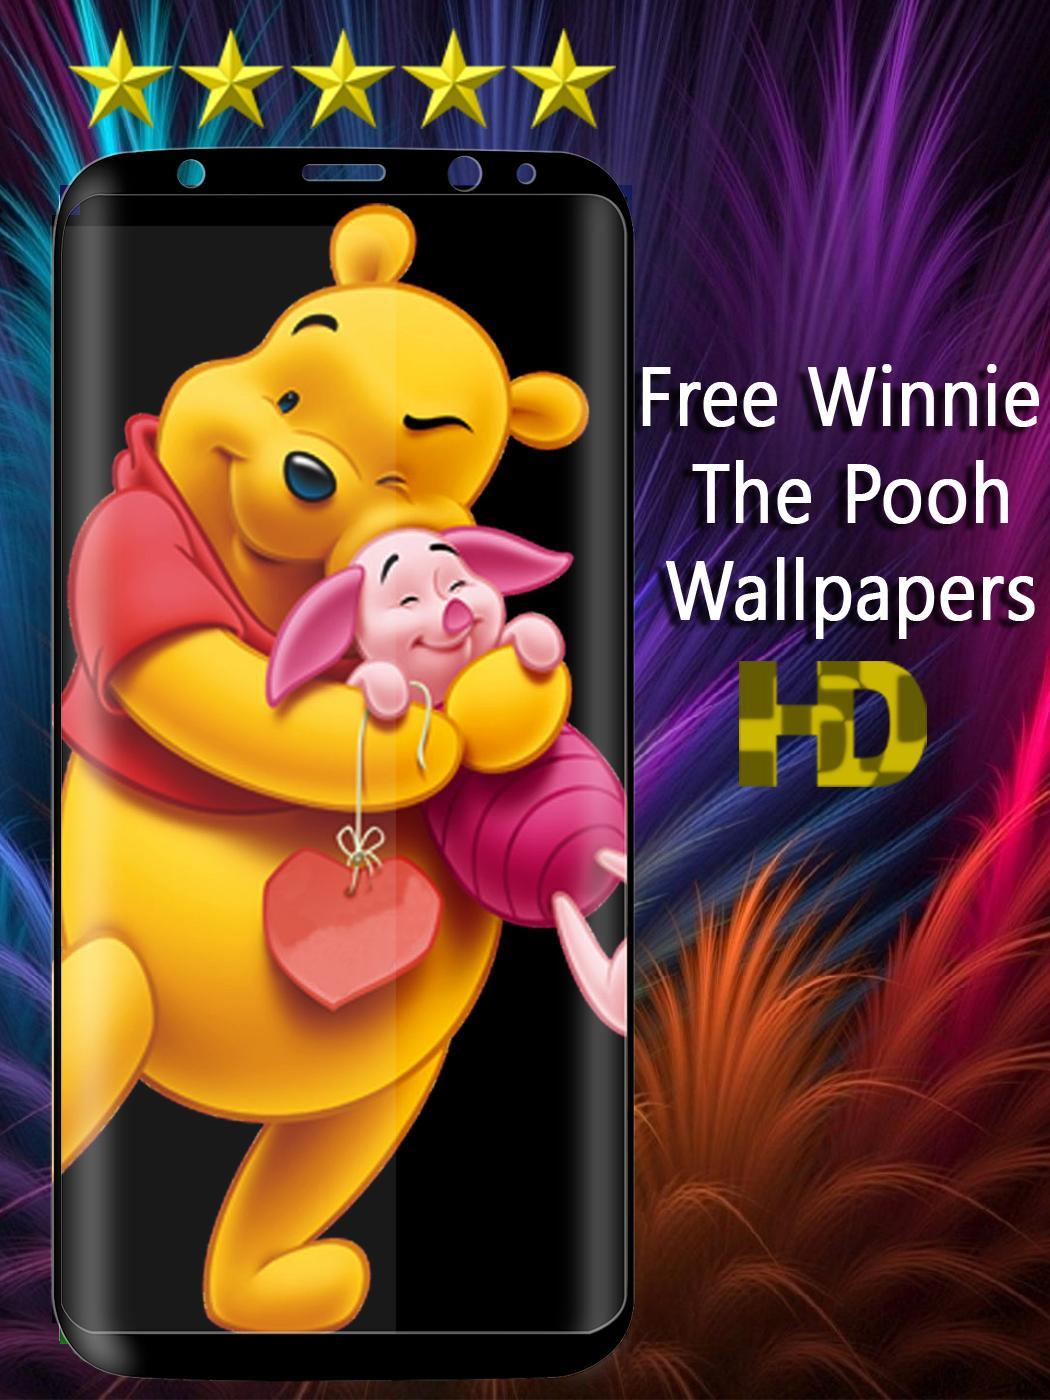 Free Winnie The Pooh Wallpaper For Android Apk Download